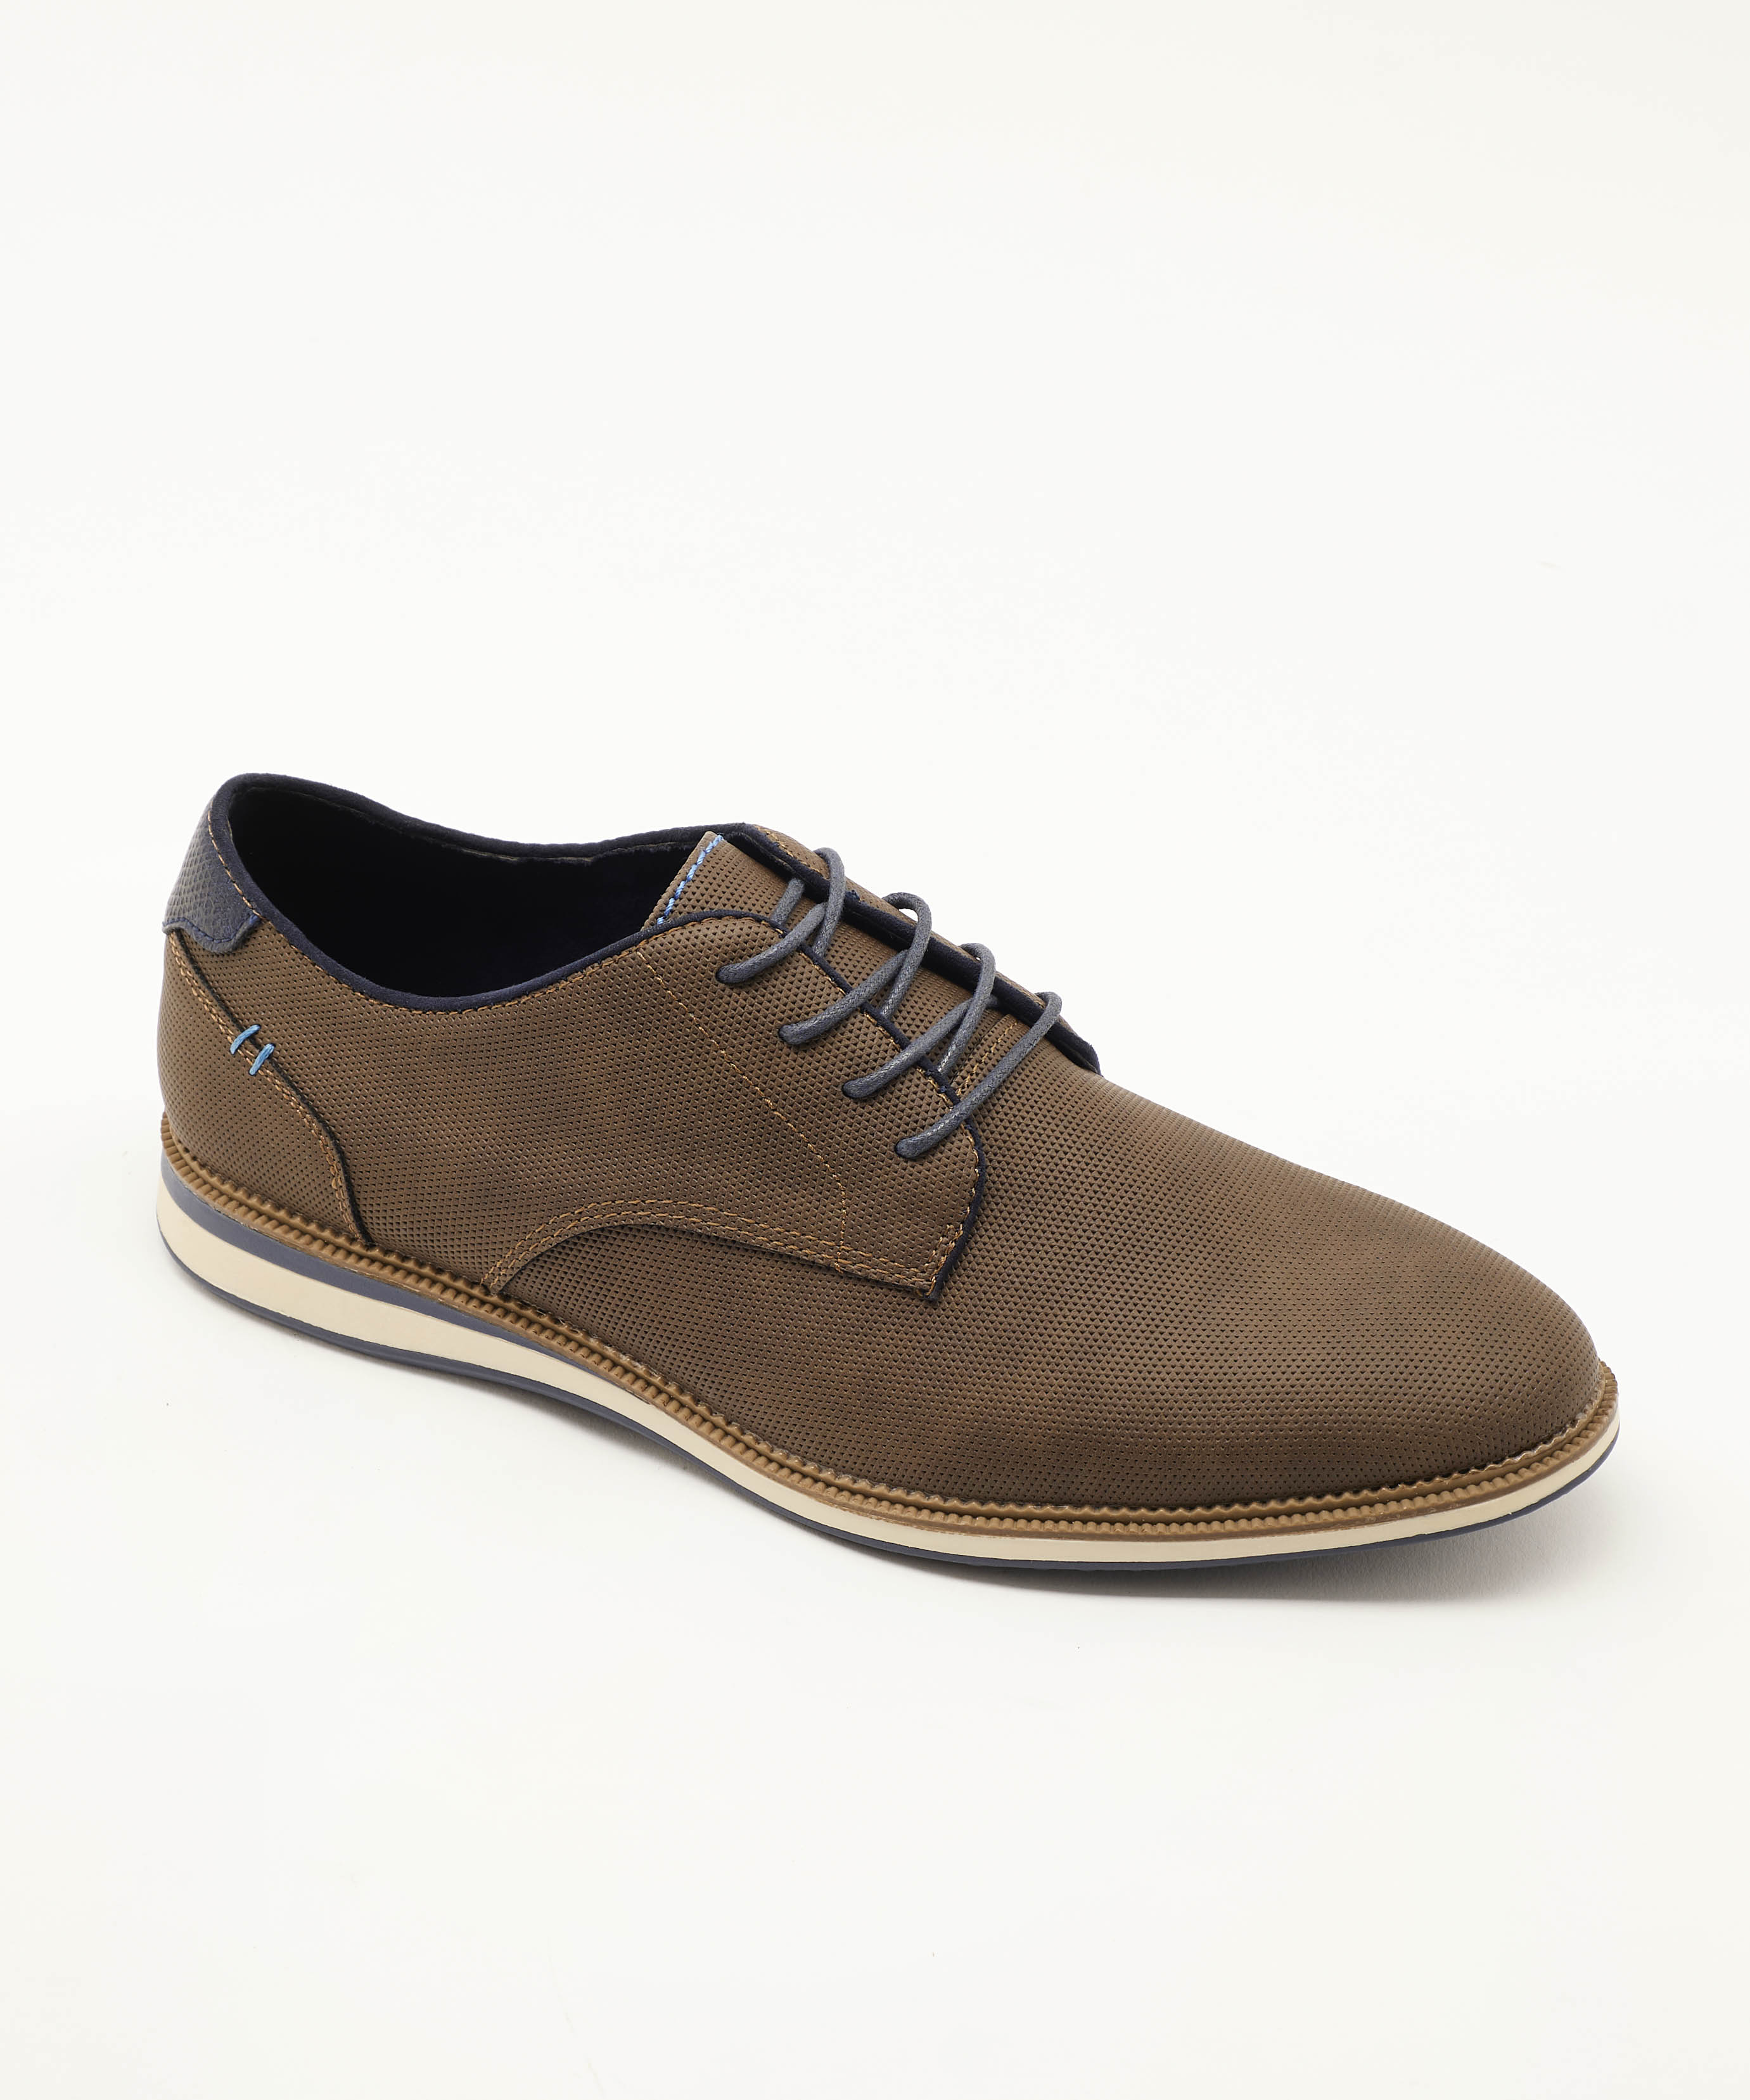 Chaussures De Ville Homme - Sneakers Taupe Jina - 492022